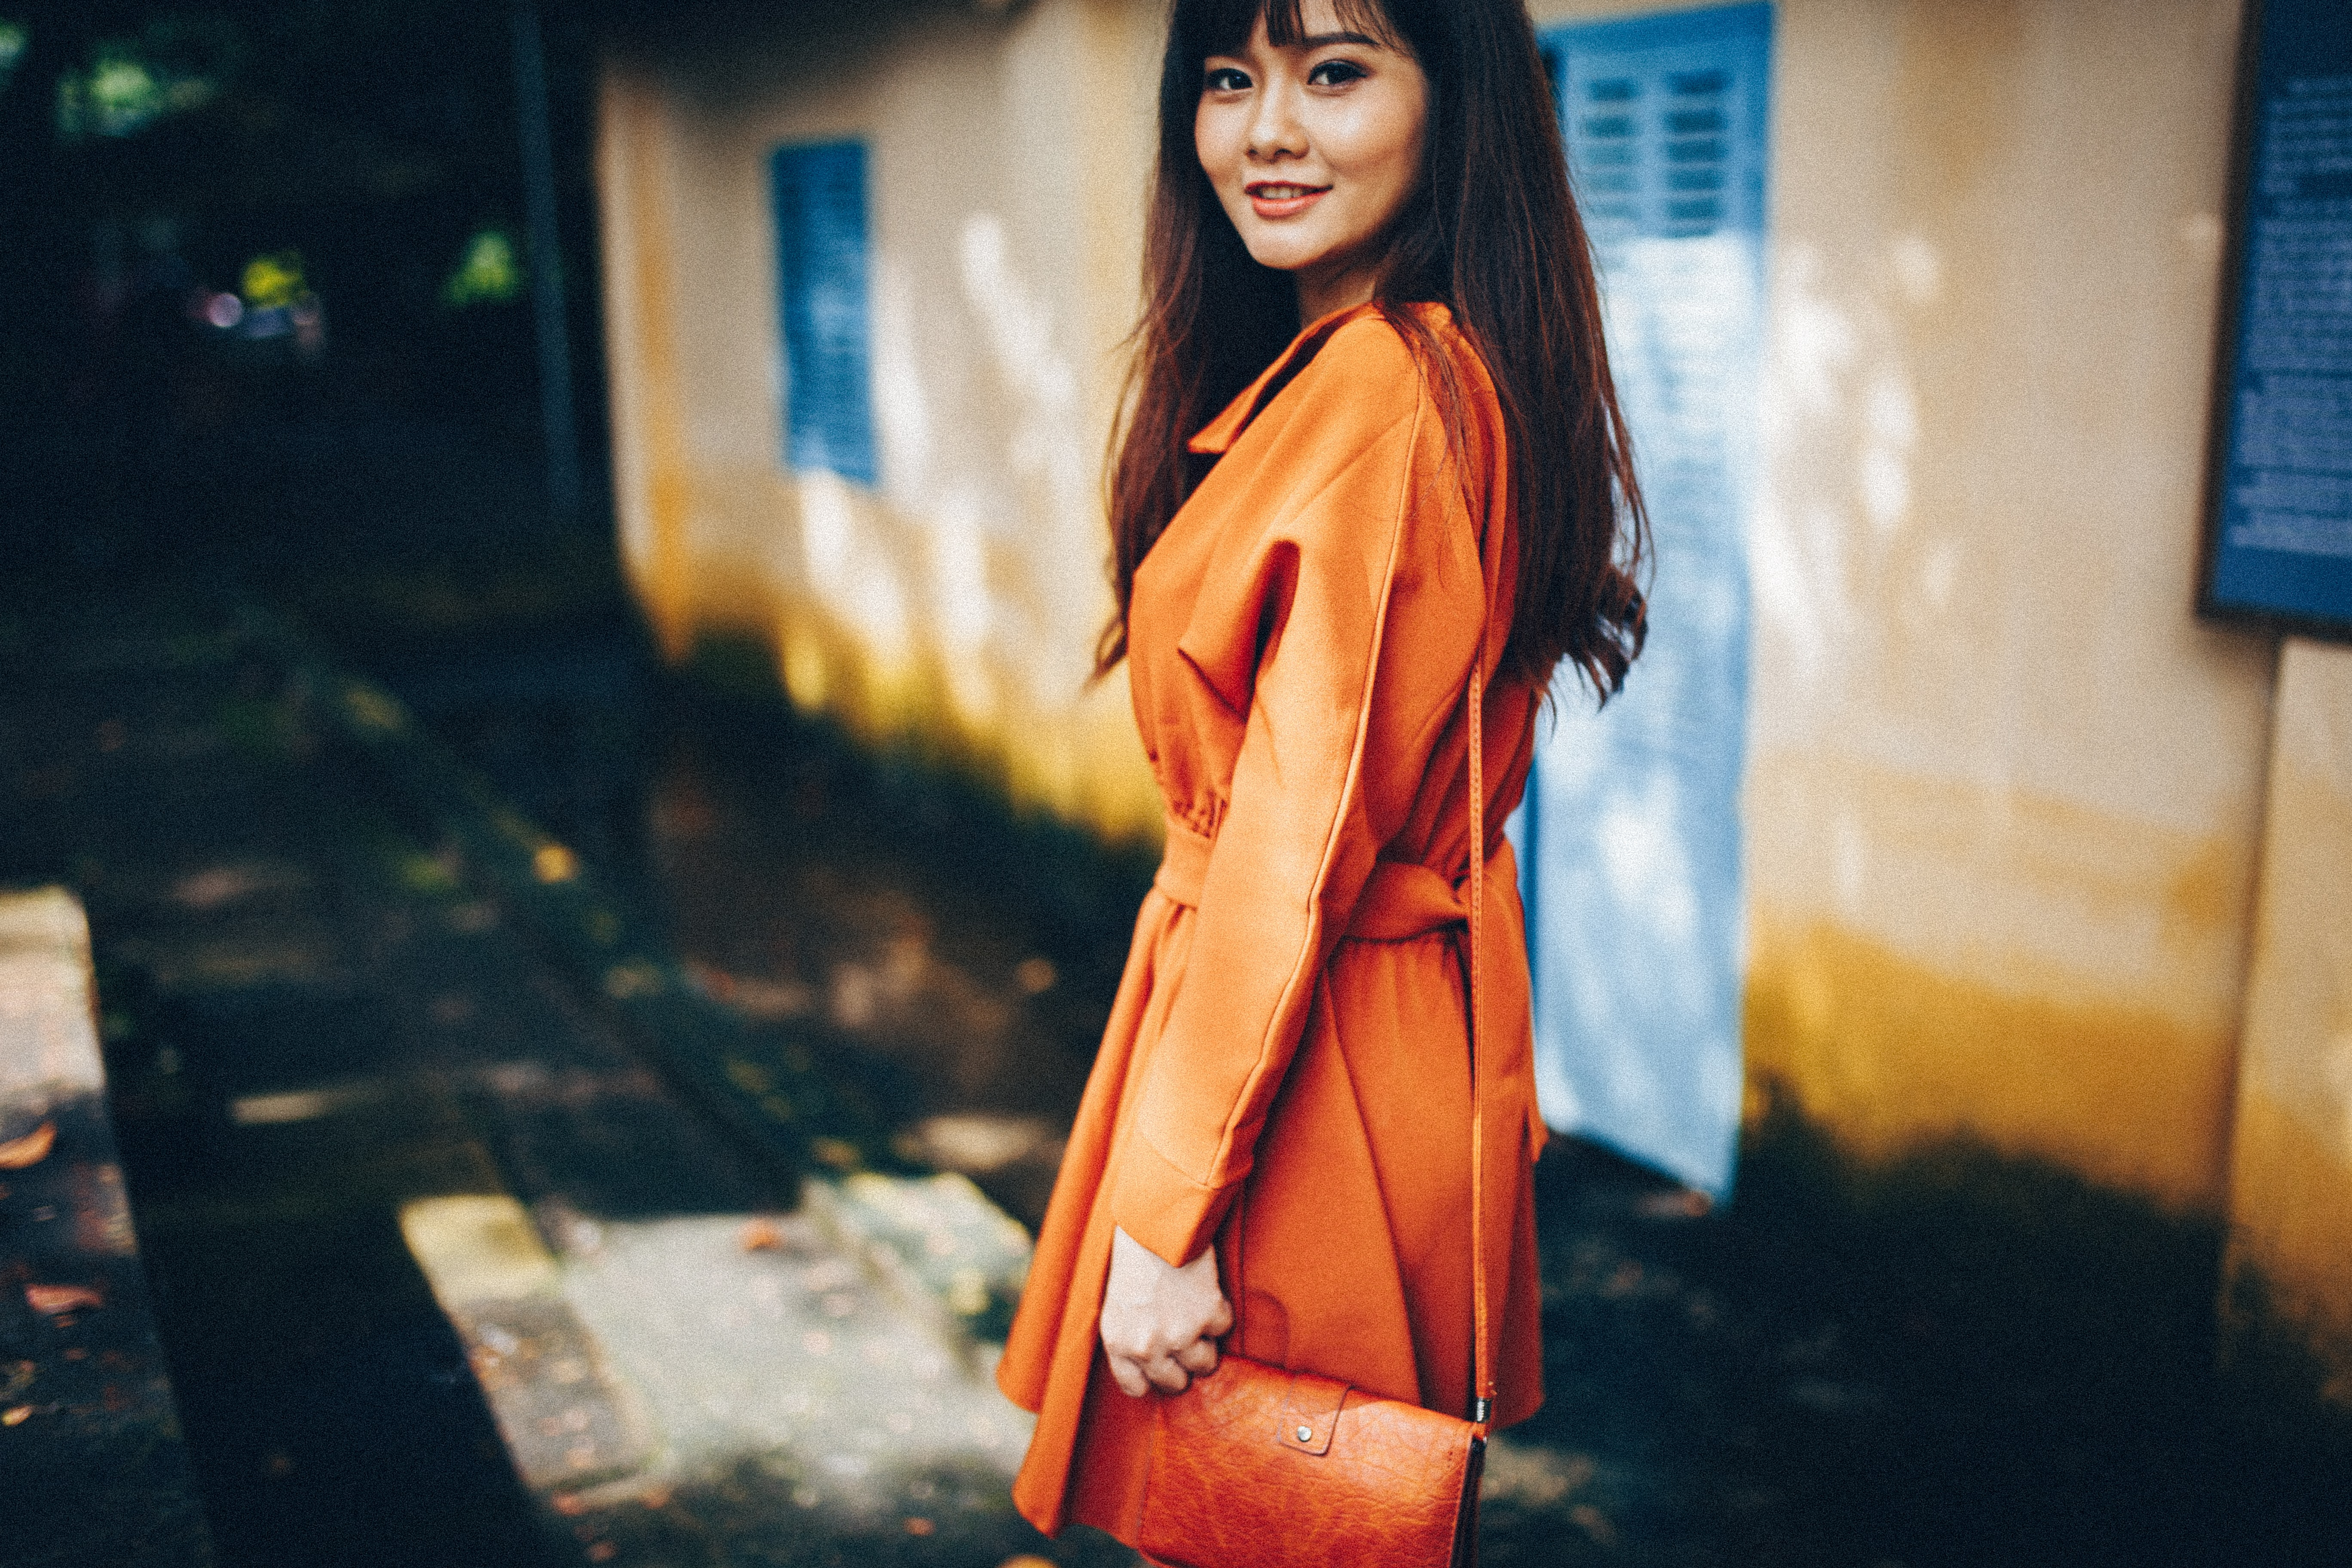 A woman in an orange coat with a purse smiles over her shoulder beside a house